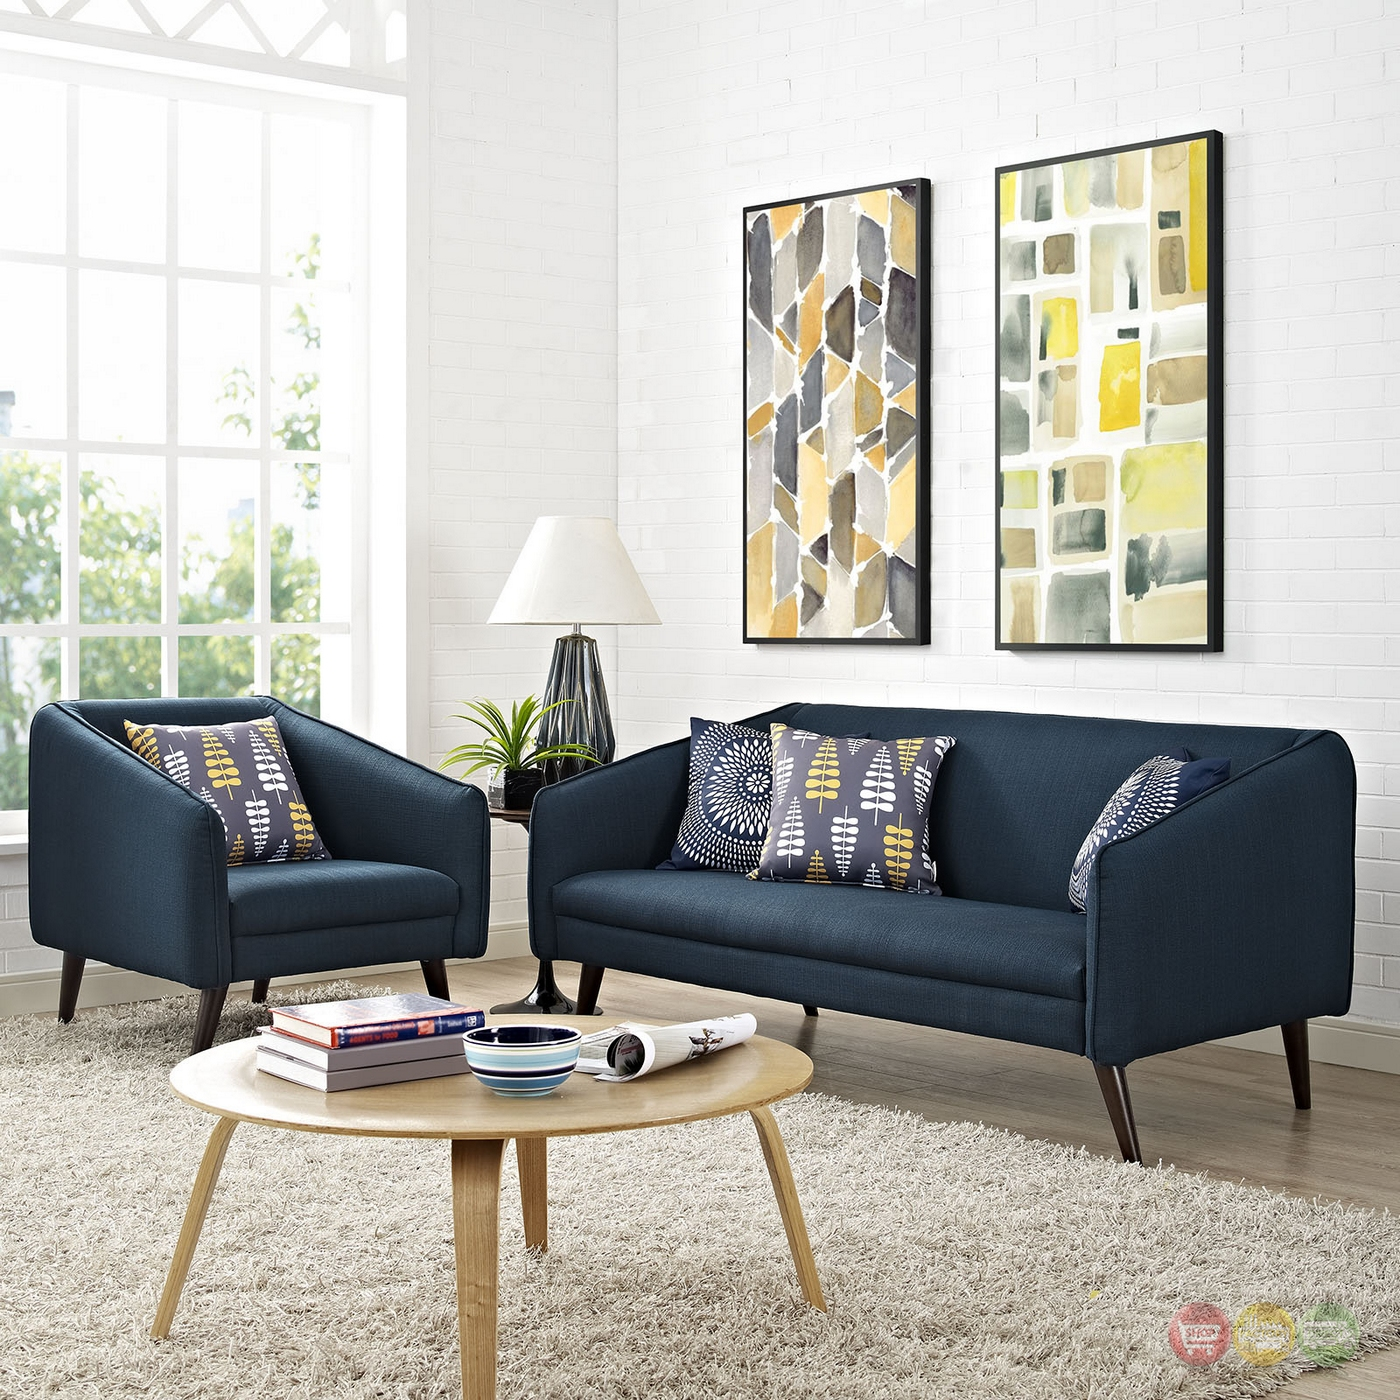 Slide Modern 2 Pc Upholstered Sofa Armchair Living Room Set Azure